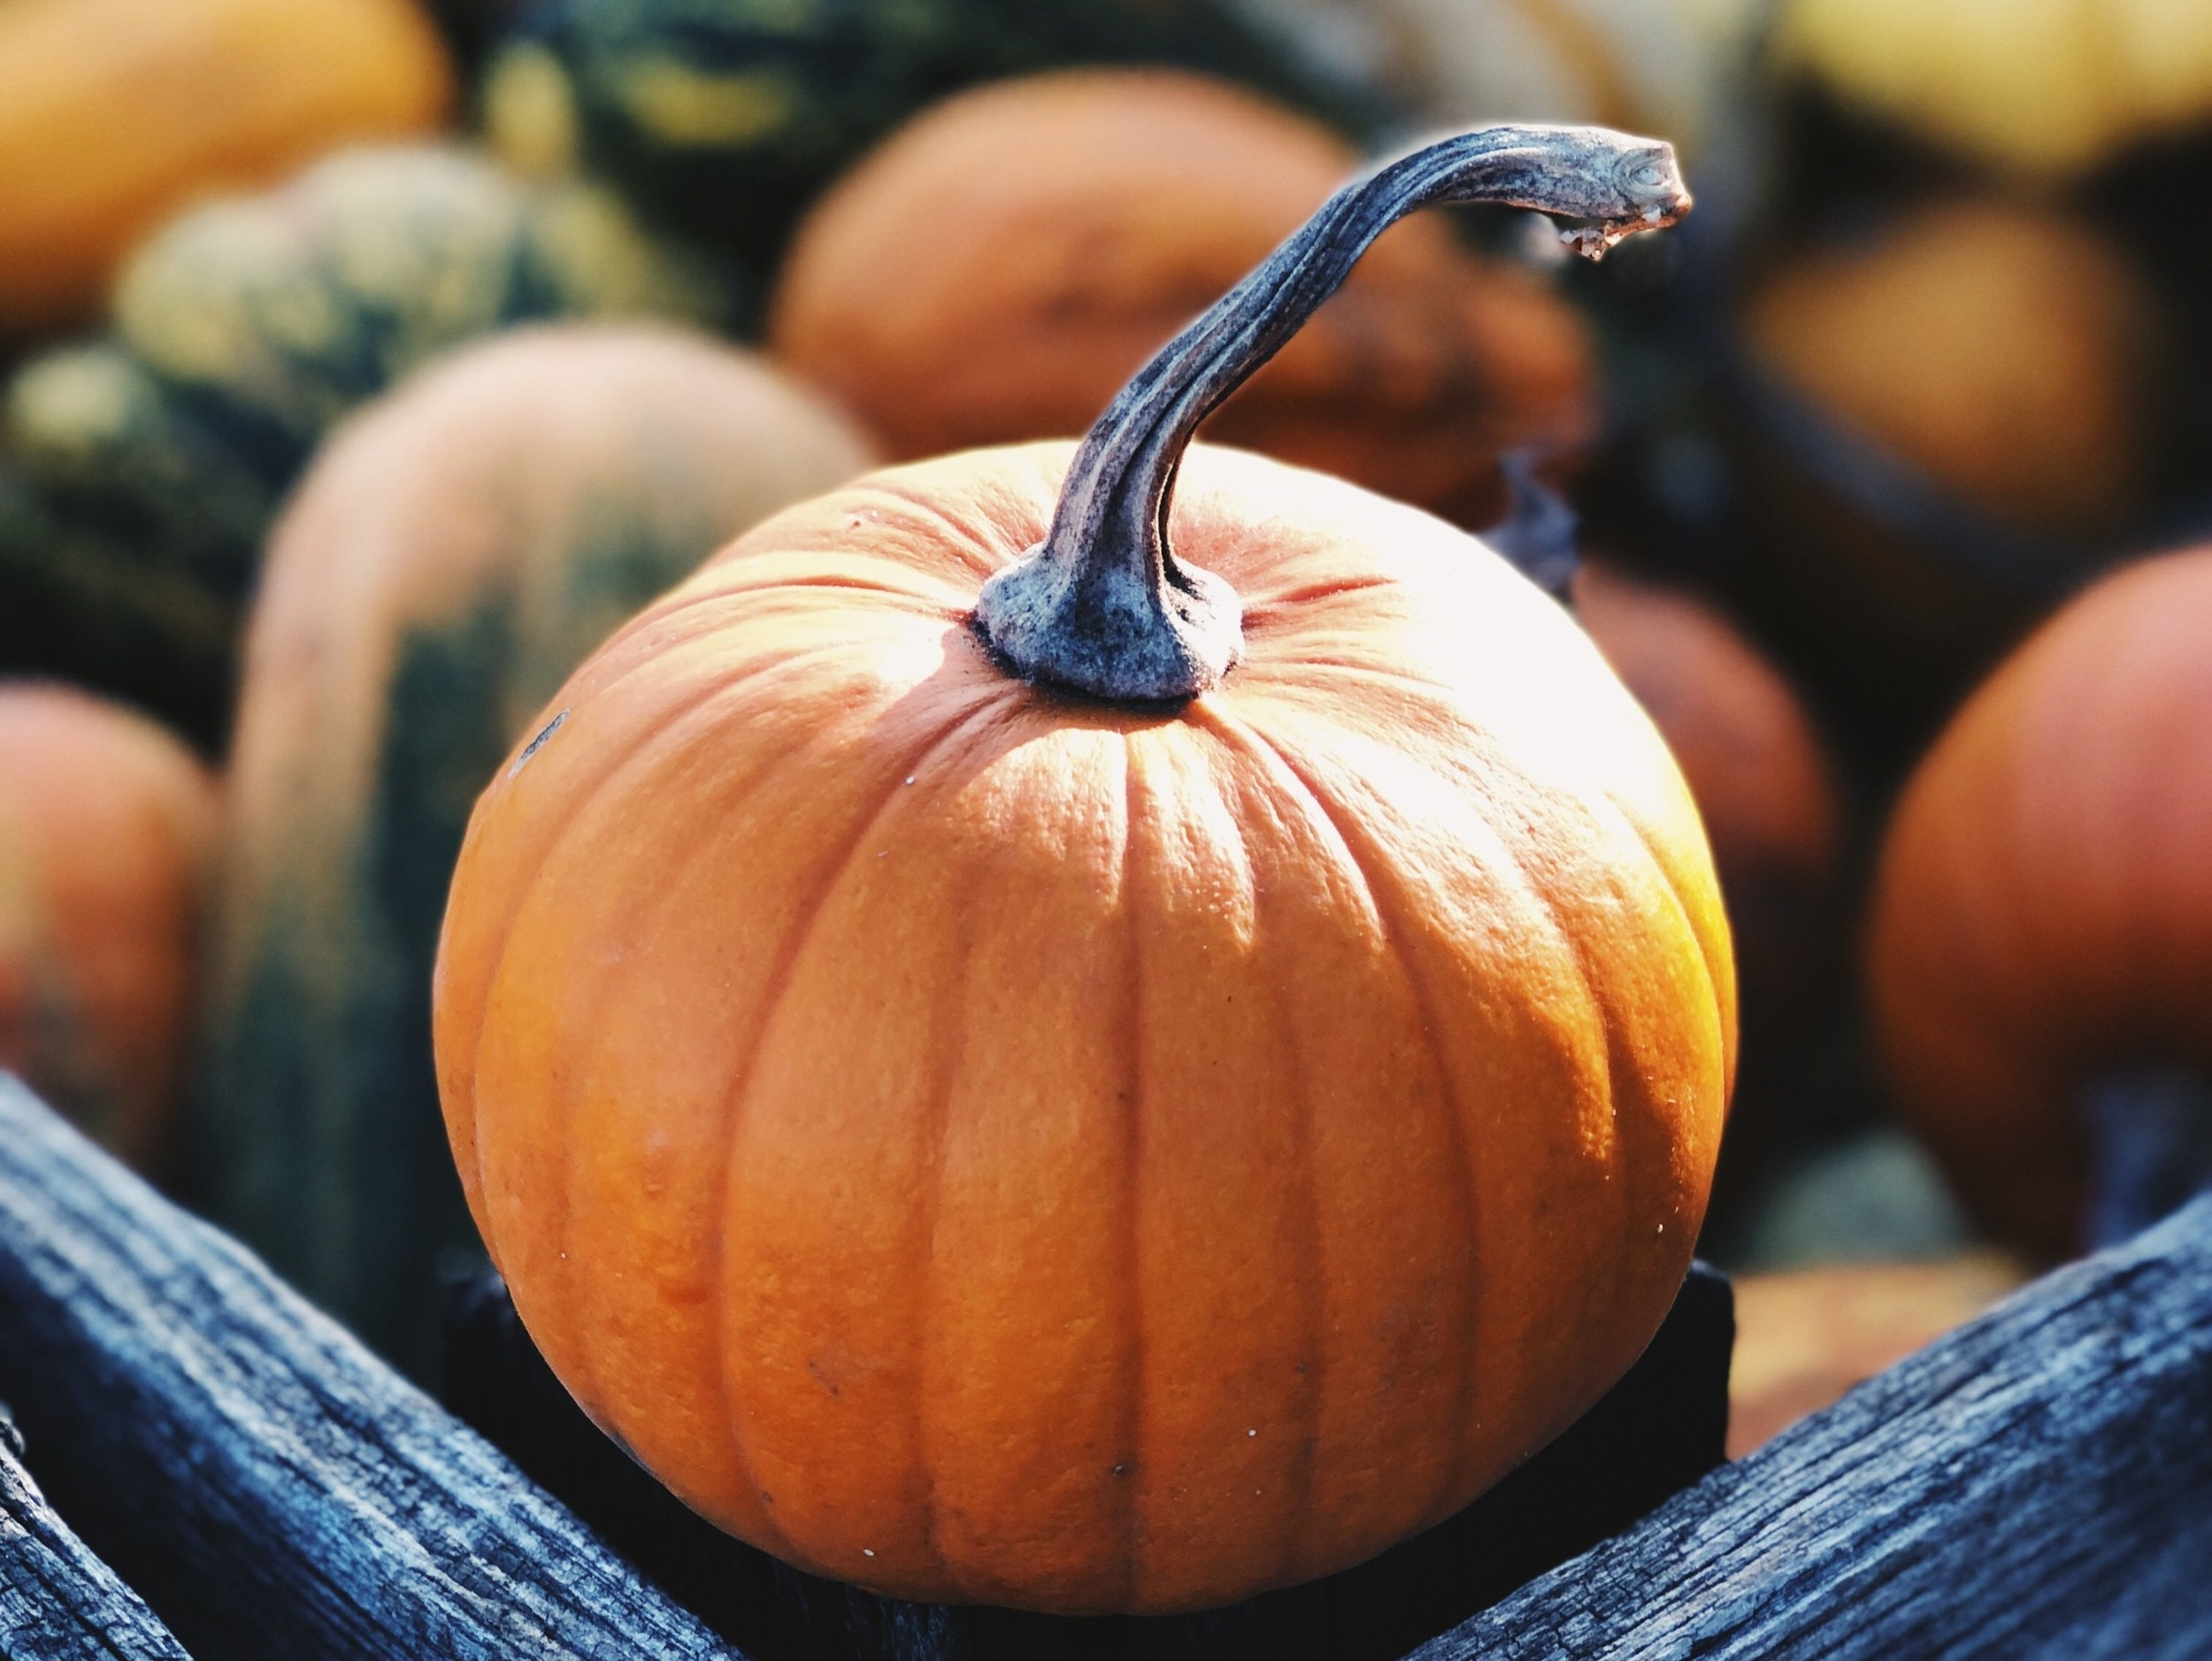 Pumpkin Patch - October marks a special time of year for our community. So many fun and meaningful things happen during fall. As a community we gather at the Parkhurst Pumpkin Patch to enjoy a bonfire, cookout, and hayride.